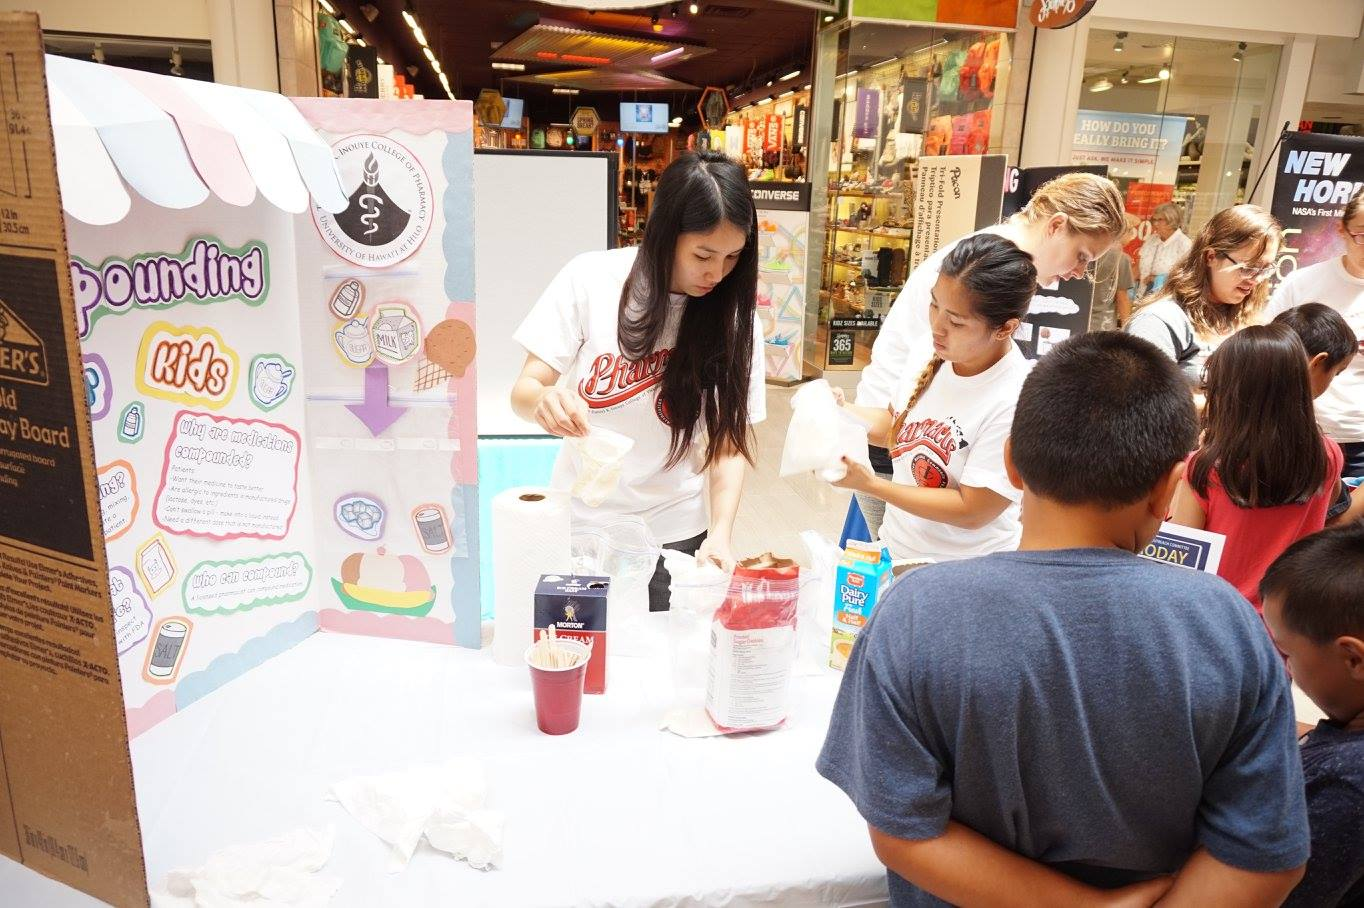 Volunteers Kaylee Hoang and Theresa Thu Nguyen show school children compounding materials.